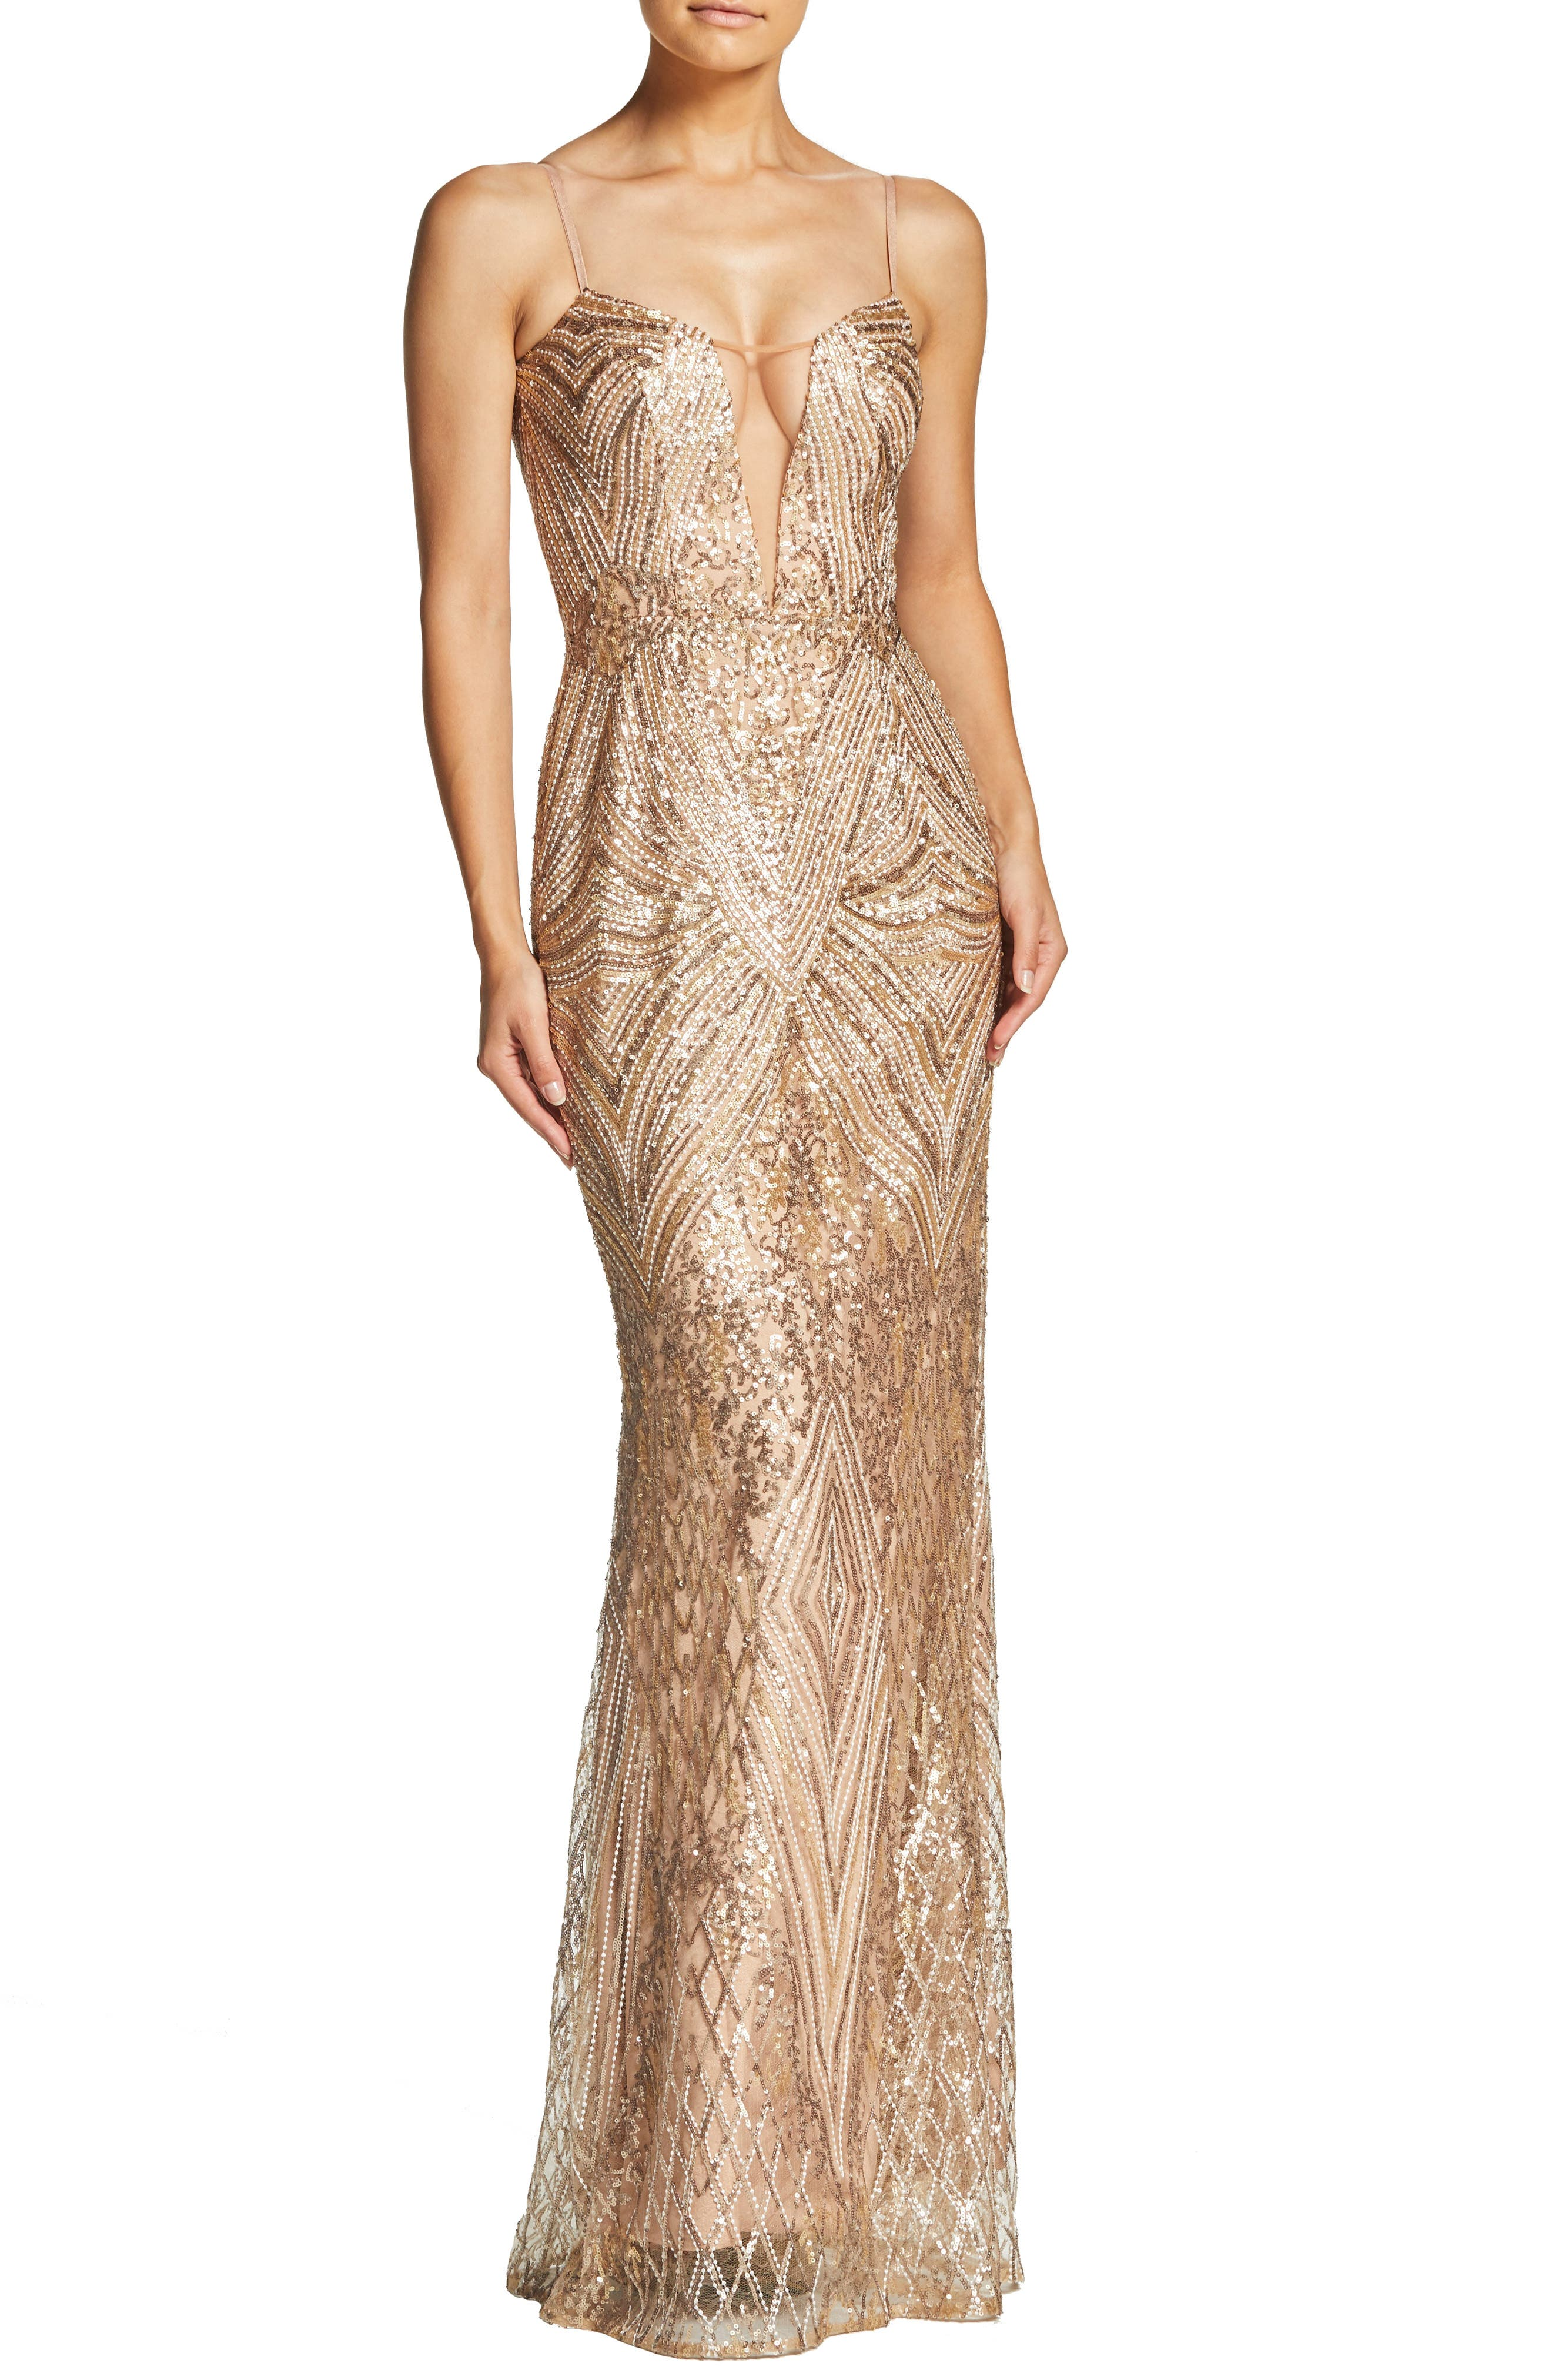 DRESS THE POPULATION Mara Art Deco Sequin Trumpet Gown, Main, color, GOLD/ BRASS